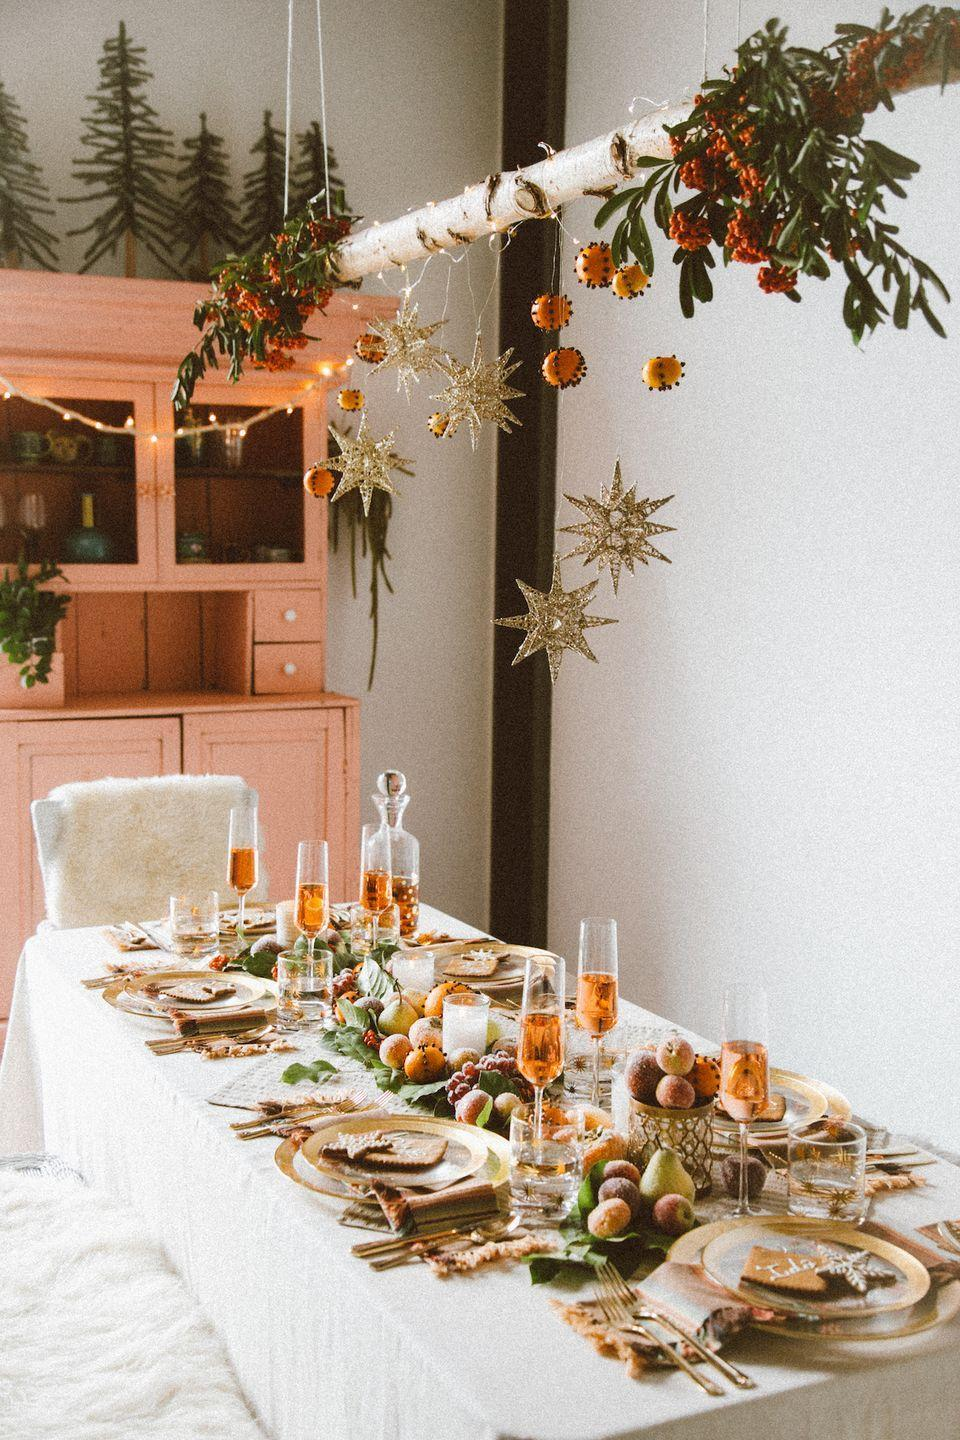 "<p>Take your Christmas centerpiece to new ""heights"" by hanging some ornaments and pendants above your dining room table. The result? A setup with floor-to-ceiling appeal.</p><p><a href=""https://blog.jungalow.com/2015/11/a-boho-ho-holiday-party-with-pier-1.html"" rel=""nofollow noopener"" target=""_blank"" data-ylk=""slk:Via the Jungalow"" class=""link rapid-noclick-resp""><em>Via the Jungalow</em></a></p>"